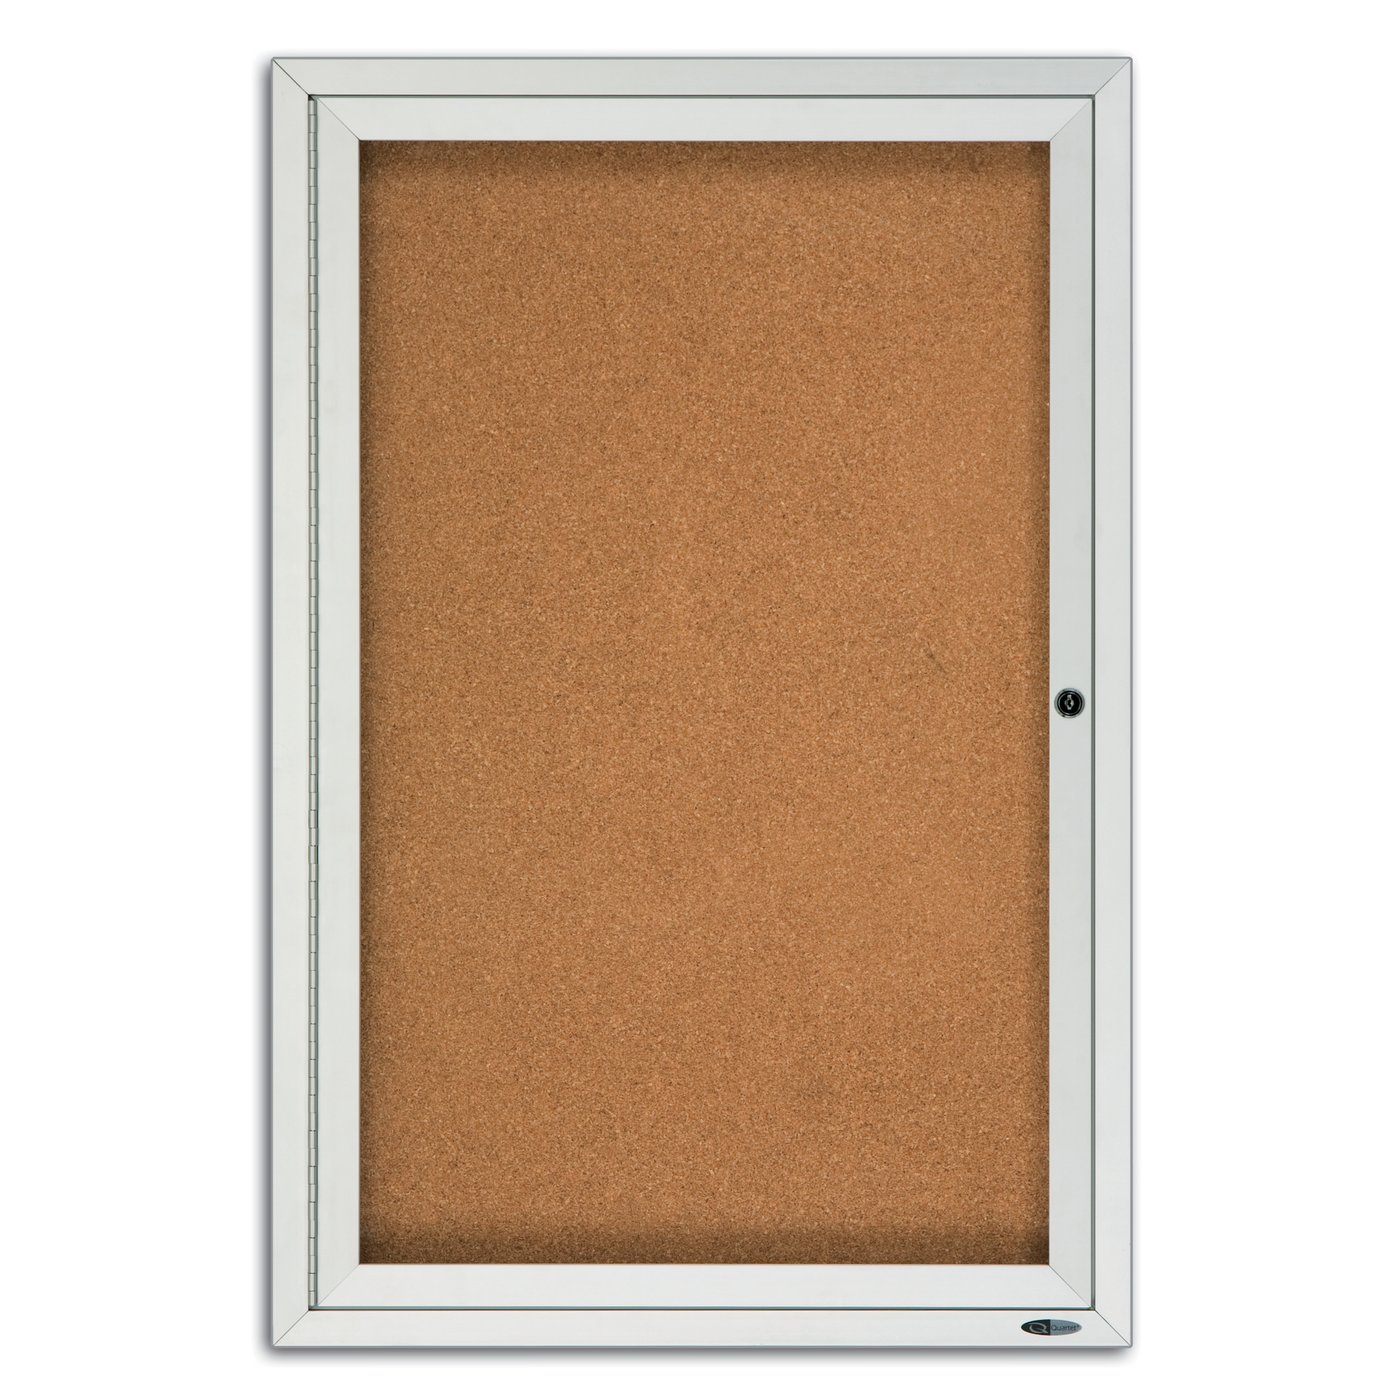 Quartet® Classic Style Enclosed Cork Bulletin Boards for Outdoor Use Swing Door Aluminum  sc 1 st  Quartet & Quartet - Boards - Enclosed Boards - Enclosed Bulletin Boards ...